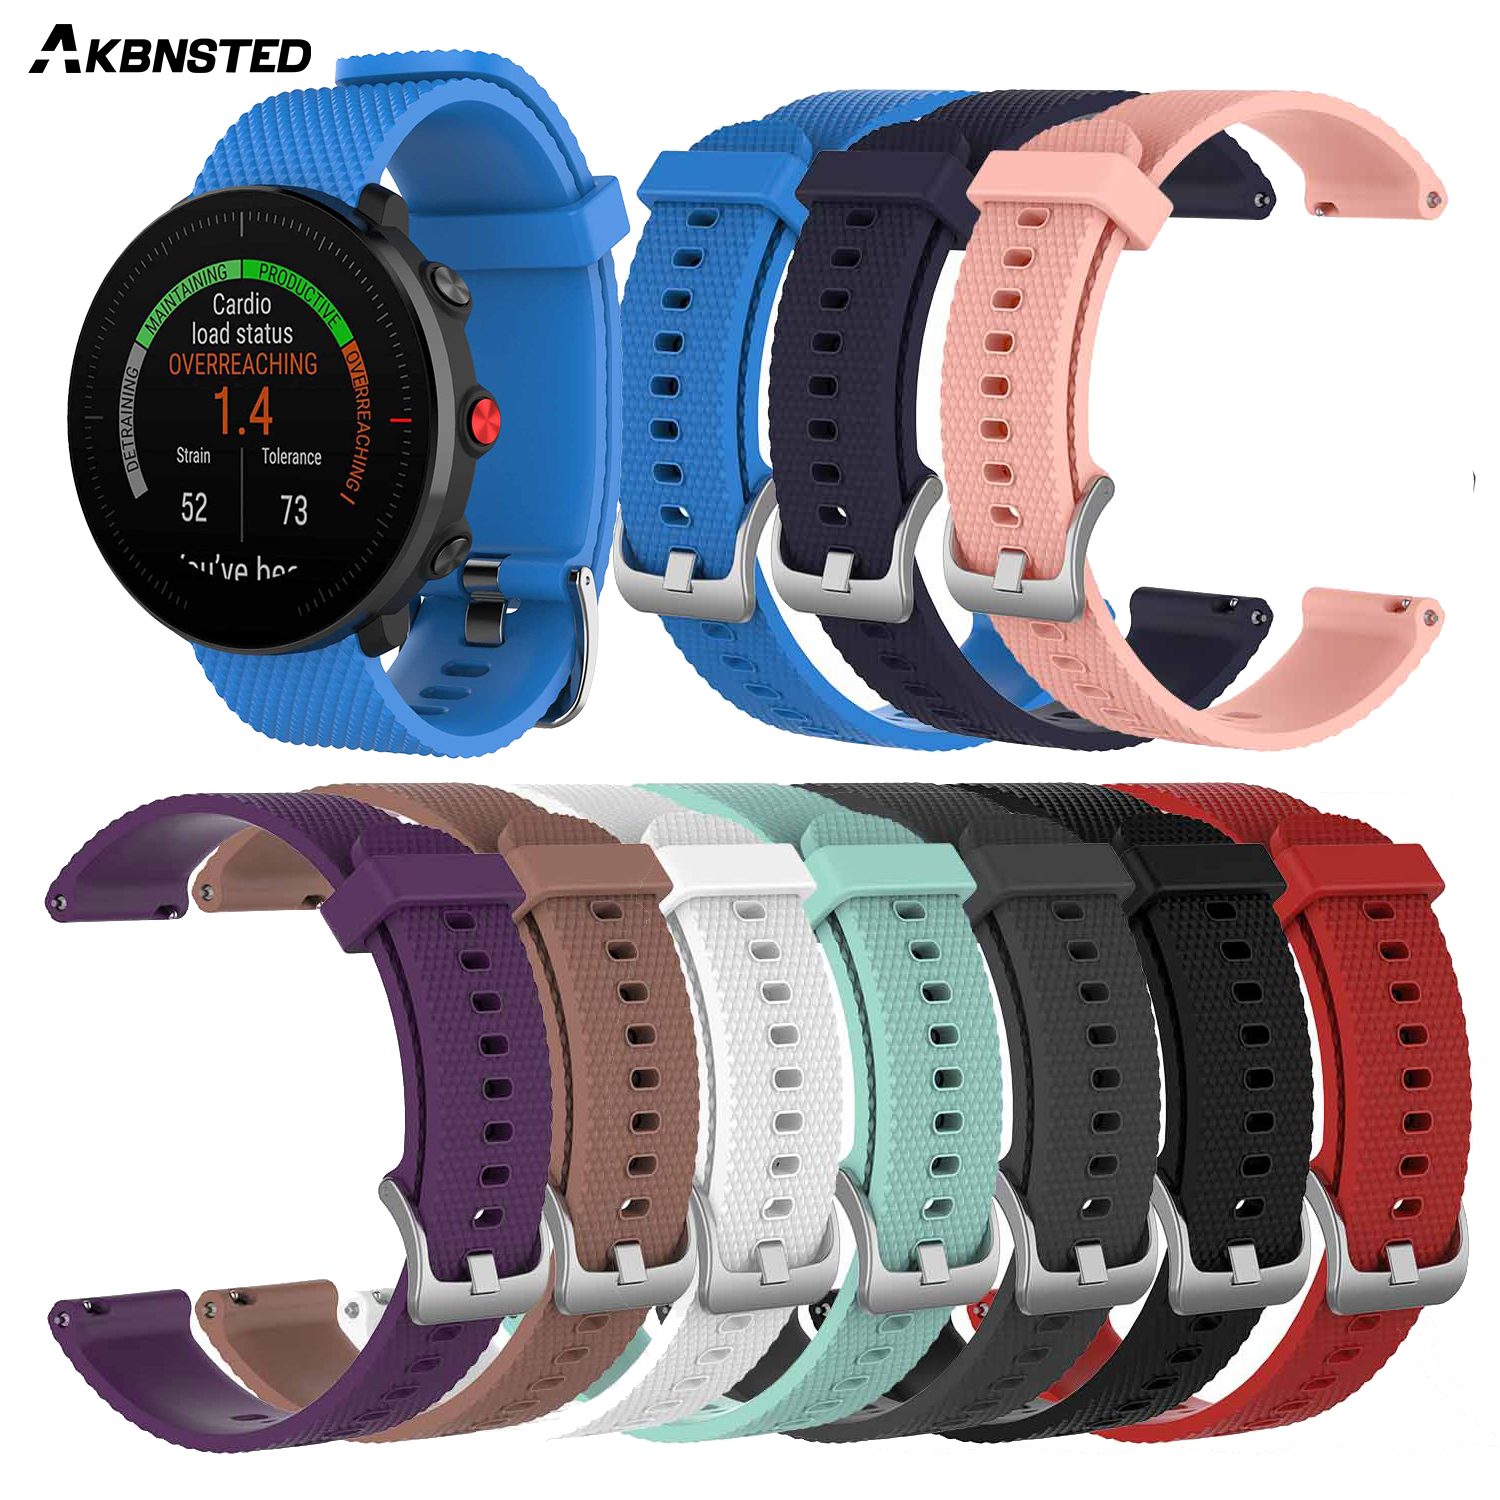 AKBNSTED Replacement Band Silicone Wristband Bracelet Strap For Polar Vantage M Smart Watch Band For Vantage M Accessories